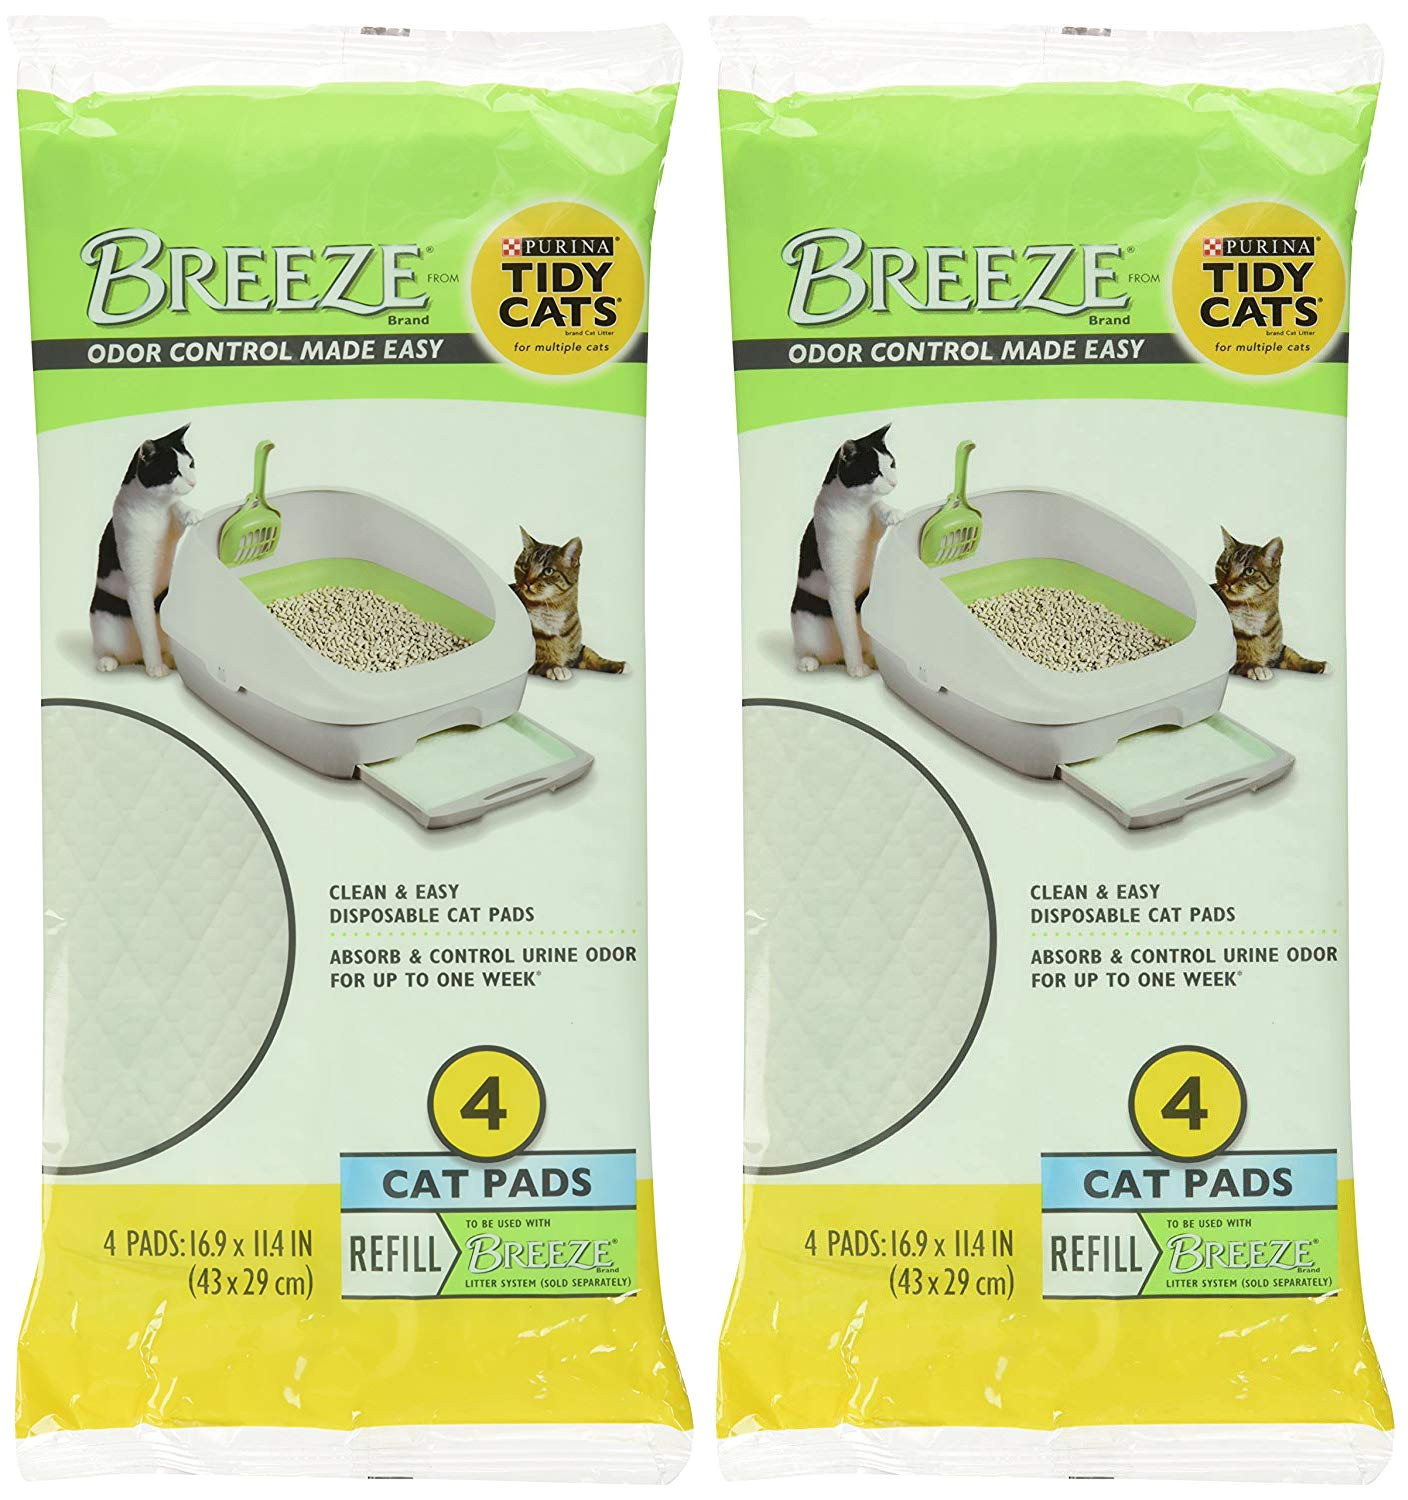 amazon com tidy cats breeze litter pads 16 9 x11 4 2 pack of 4 pads 2 pack 2 set of 2 pack pet supplies